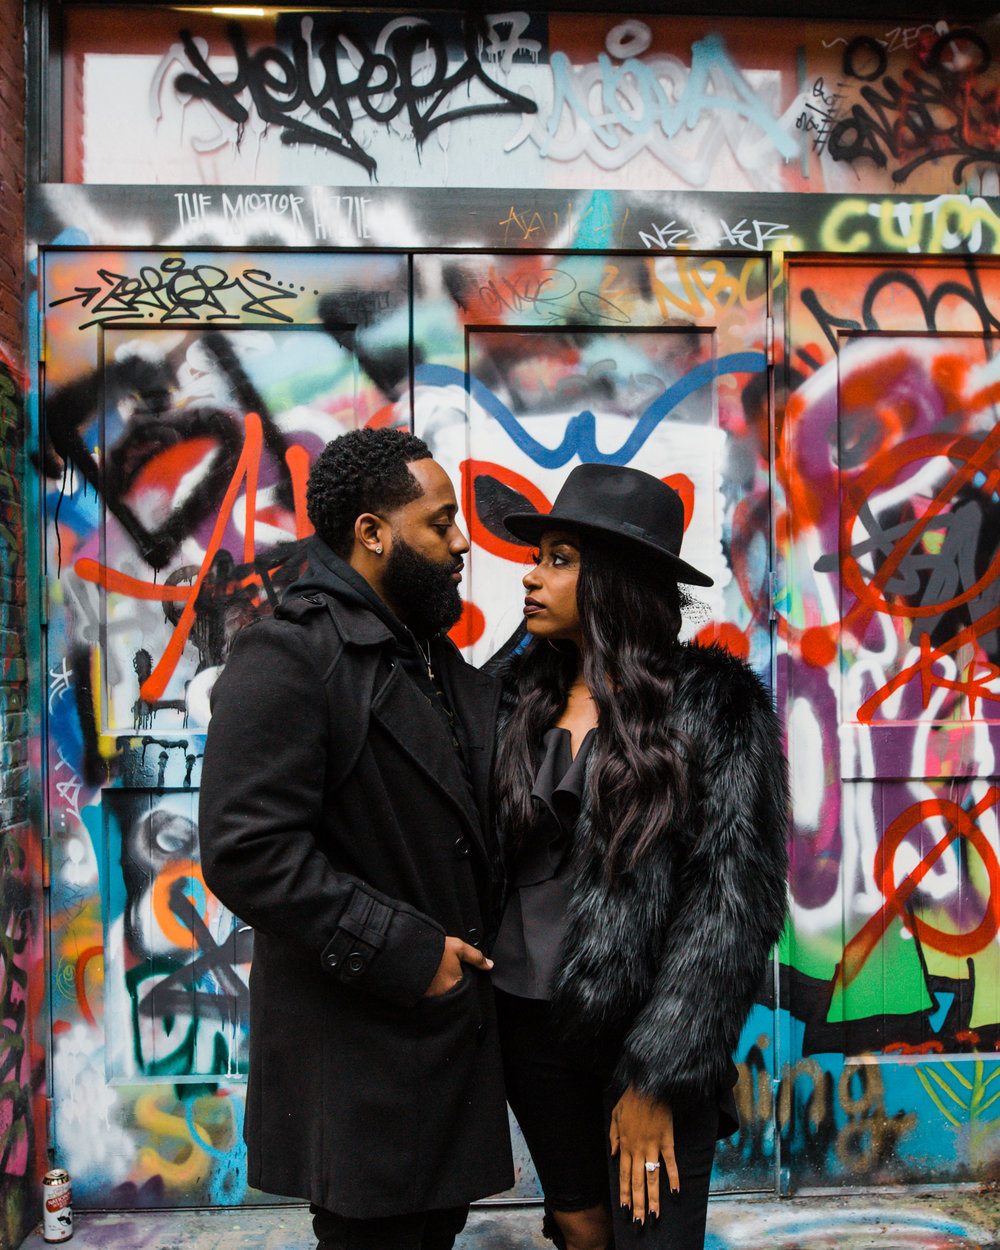 Creative Baltimore Graffiti Alley Engagement Session Megapixels Media Photography-13.jpg